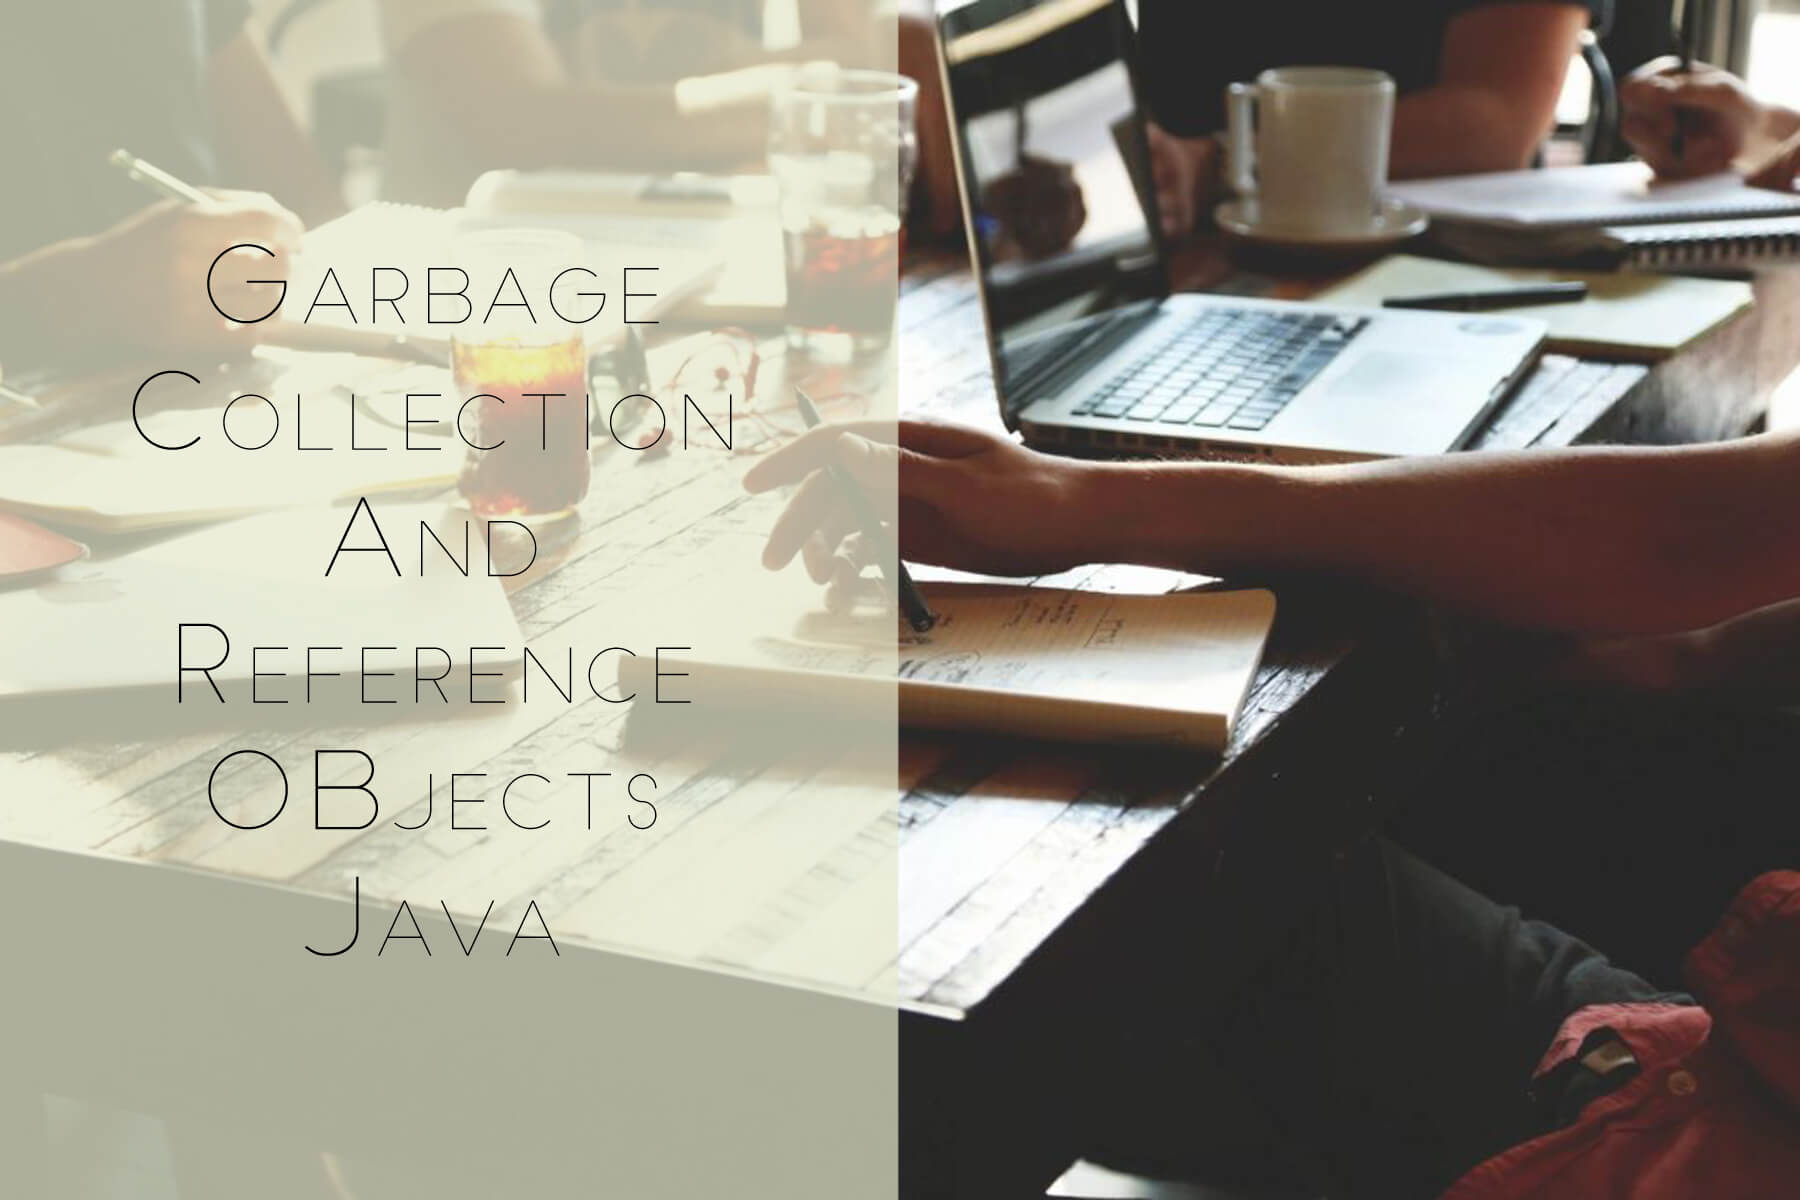 Java Reference Object and Garbage Collection